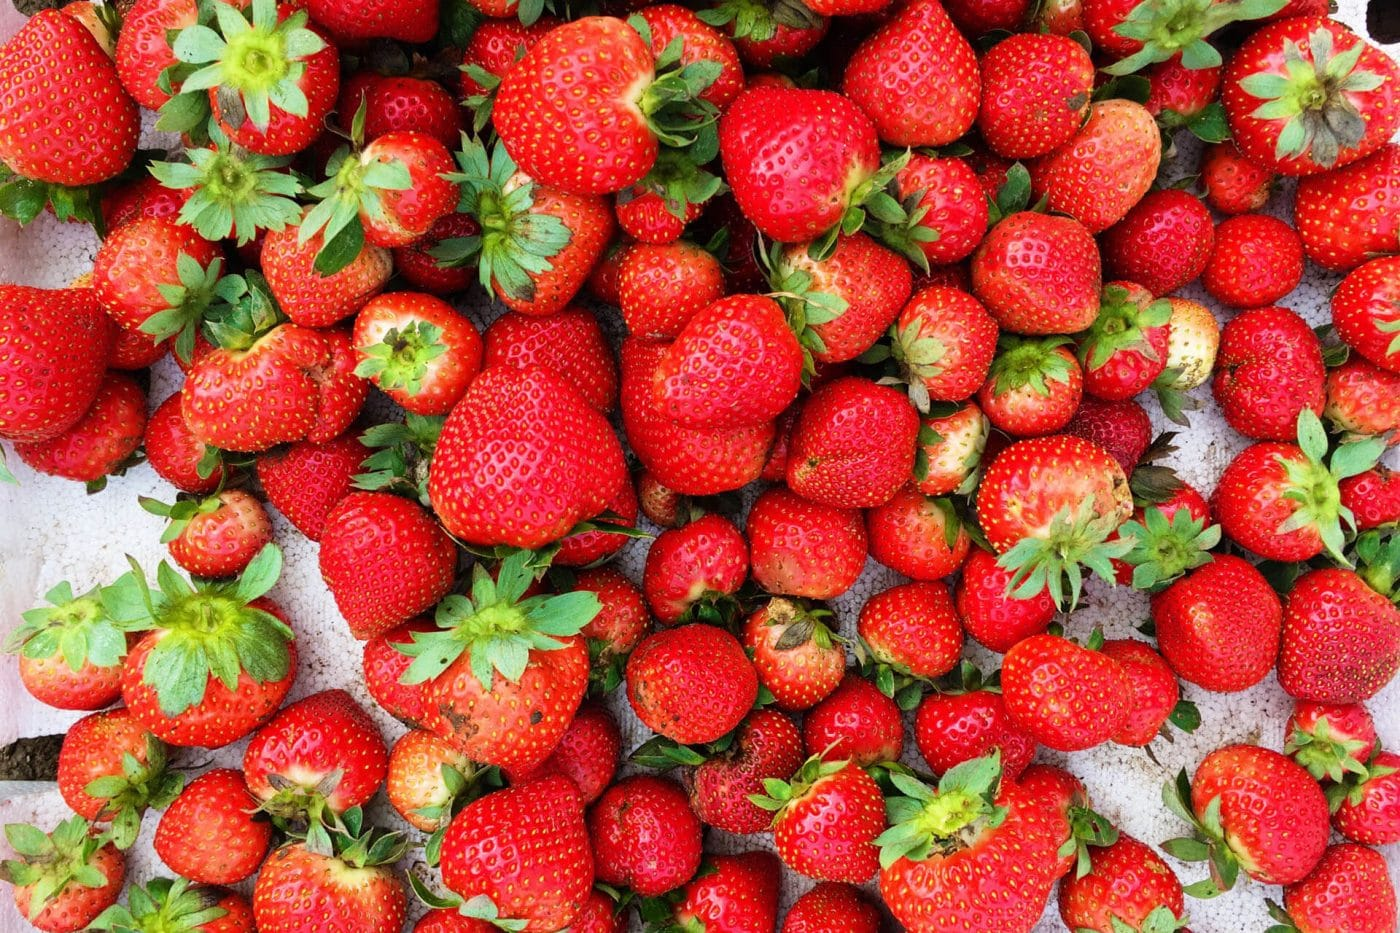 Photo of Strawberries in La Trinidad Strawberry Farm